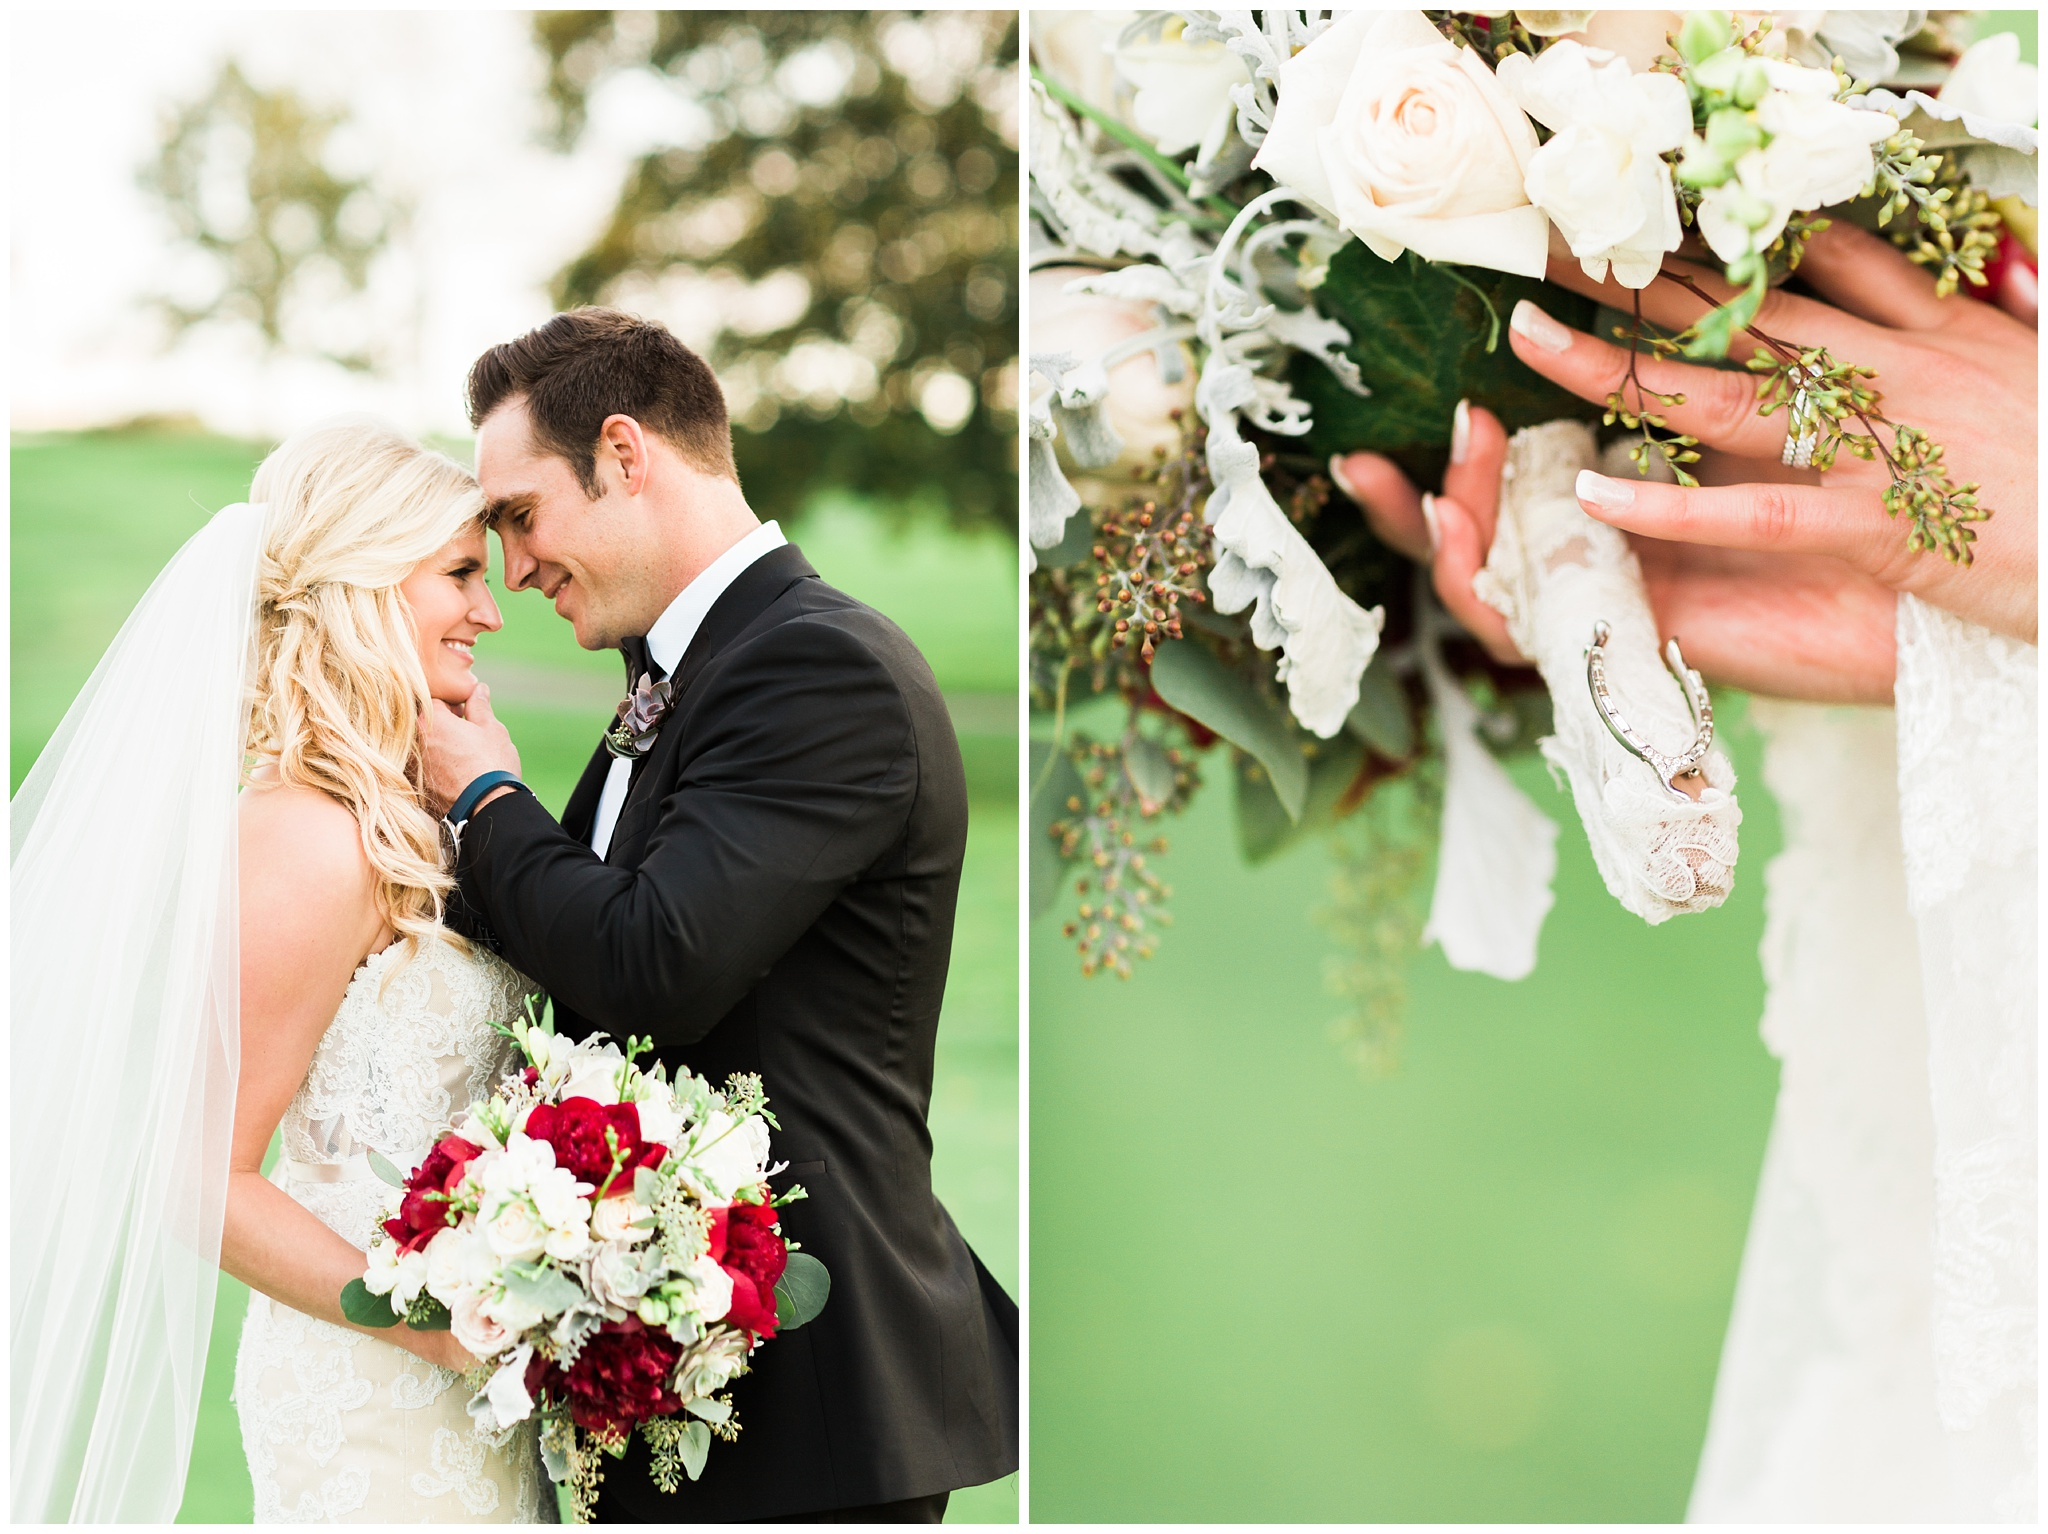 RebeccaHaleyPhotography_BarringtonPhotographer_ChicagoPhotographer_ChicagoWedding_0059.jpg